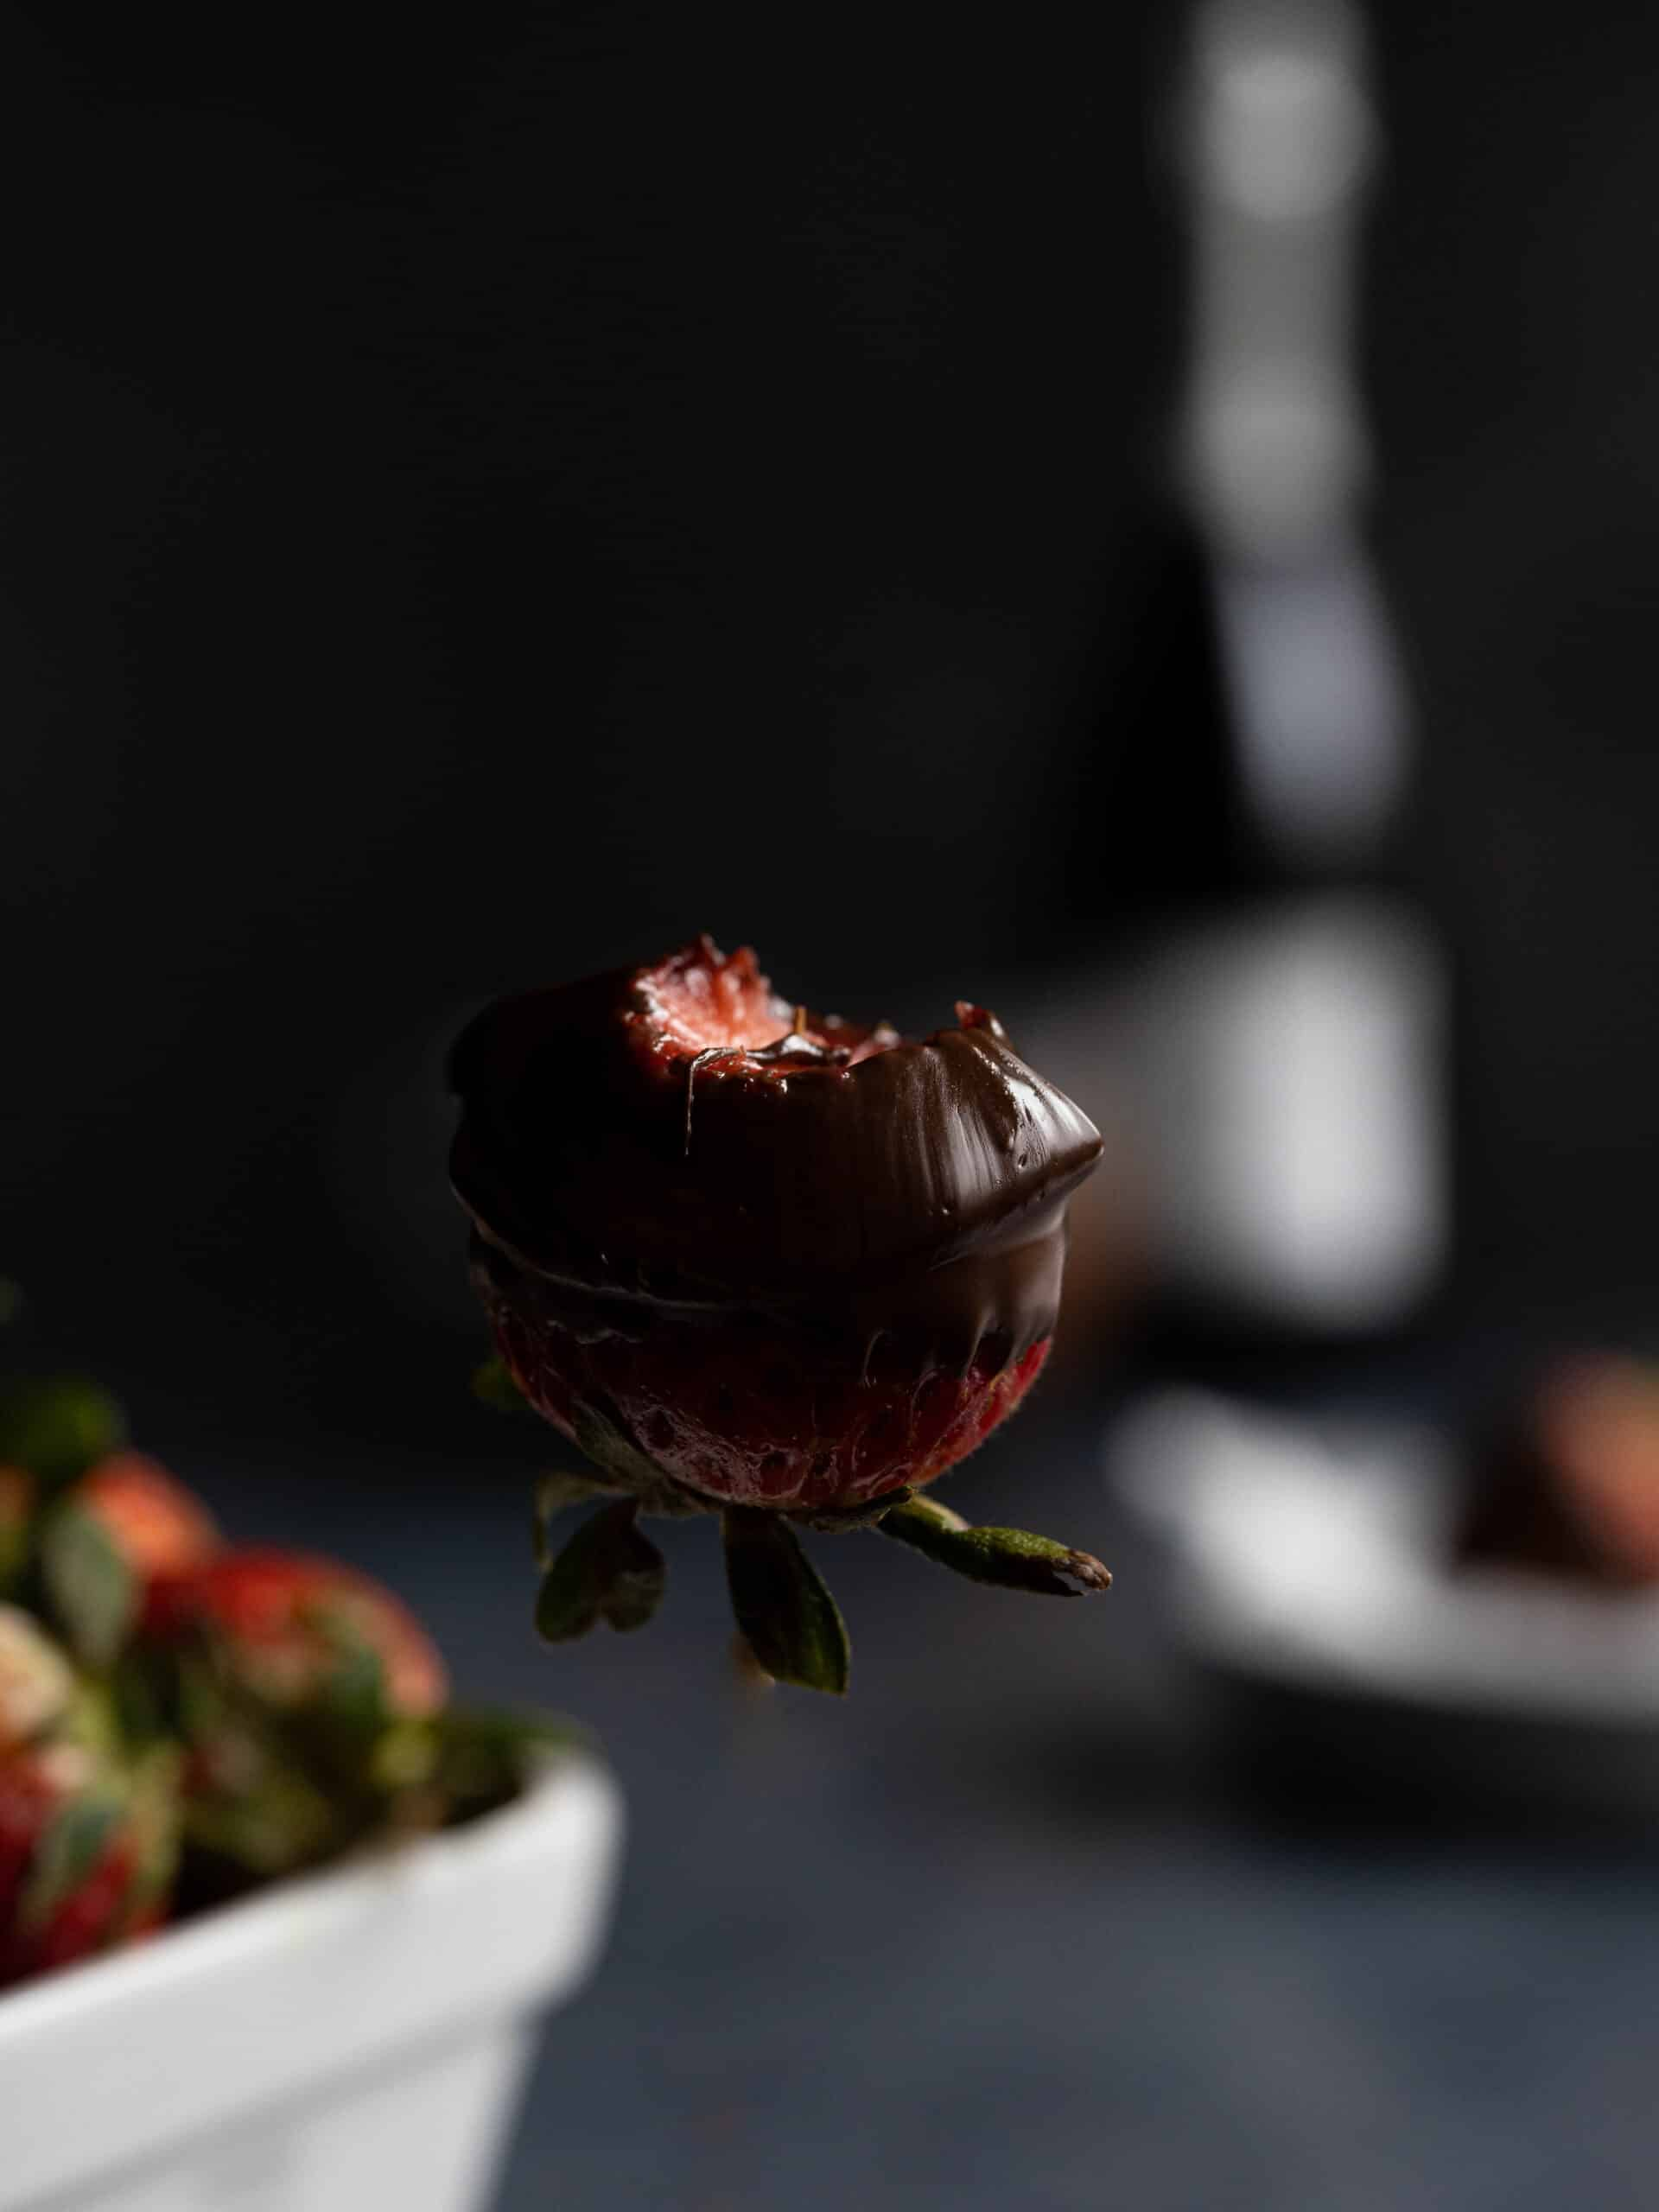 A chocolate dipped strawberry floating mid air